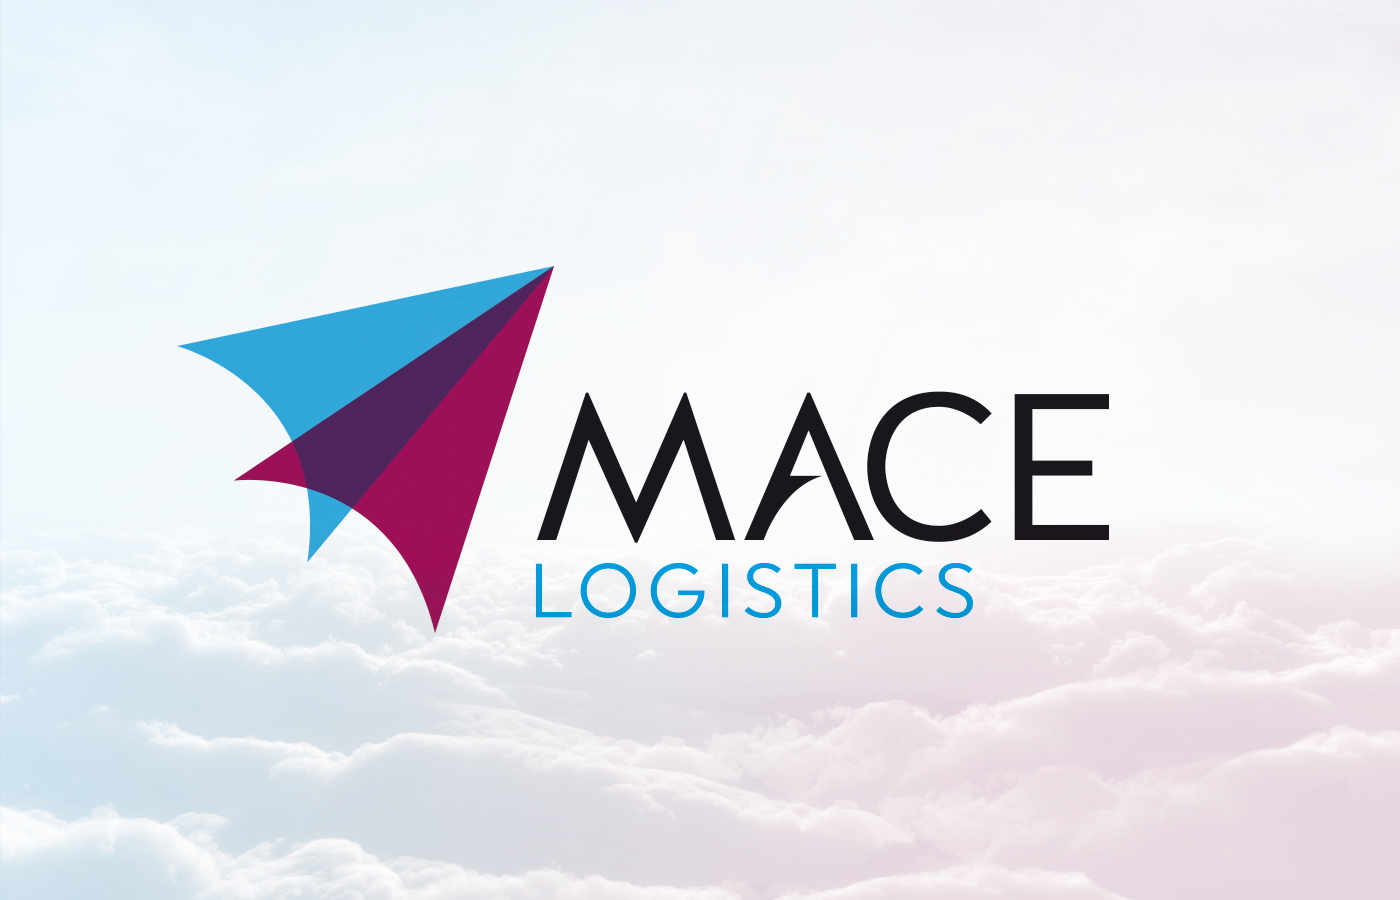 Mace Logistics logo design